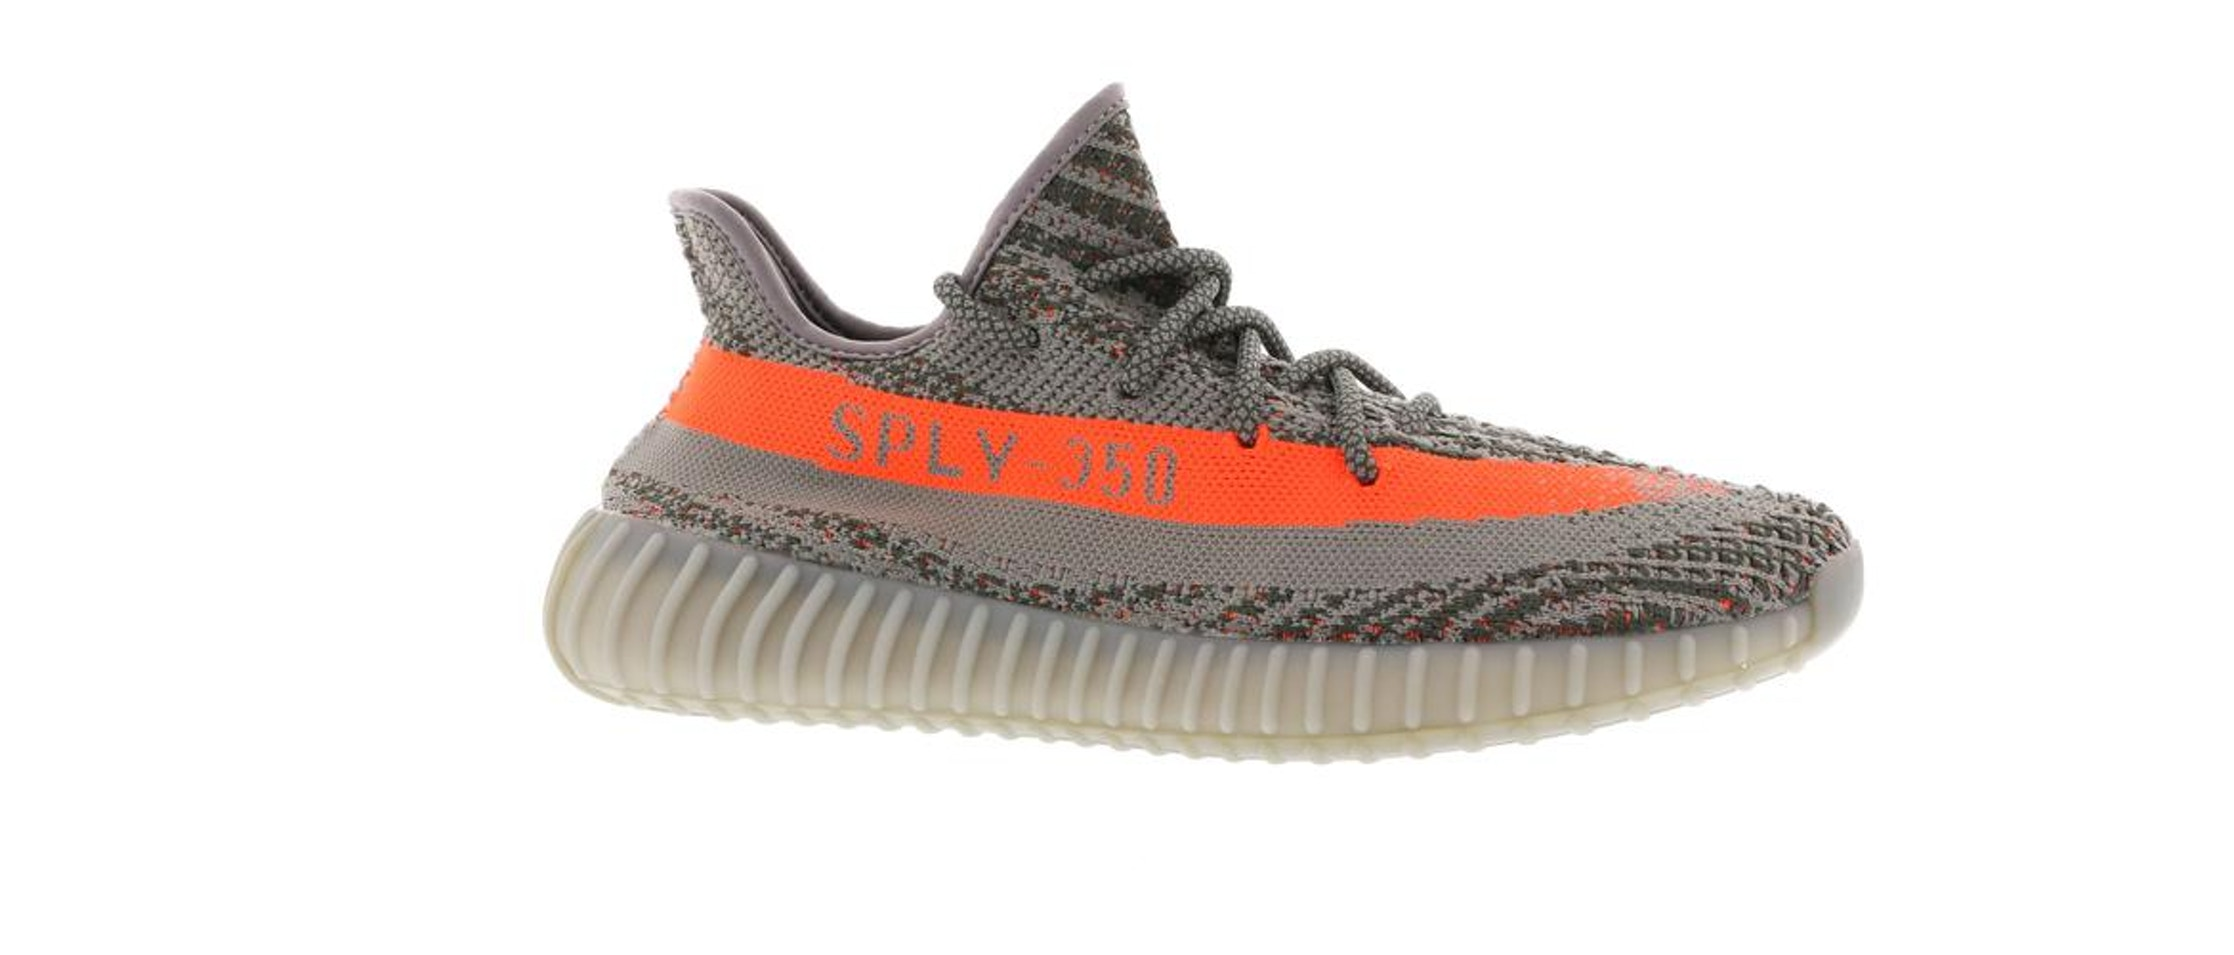 Yeezy 350 tan  Yeezy Boost Official Adidas Yeezy Boost_Cheap Yeezy 350 V2 For Kids